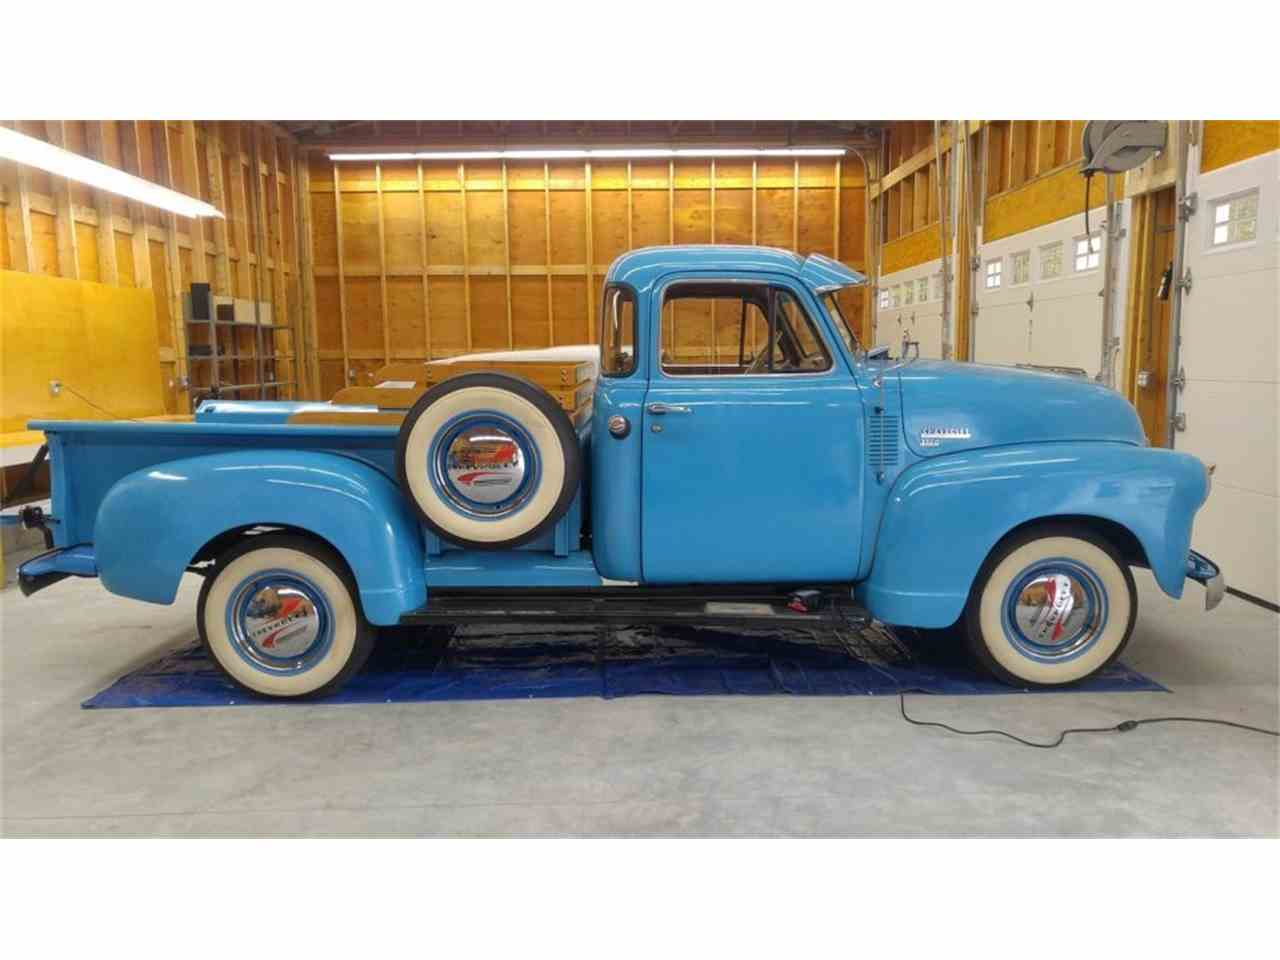 Large Picture of '51 Chevrolet 3/4-Ton Pickup located in Hanover Massachusetts - $21,500.00 - LRWS